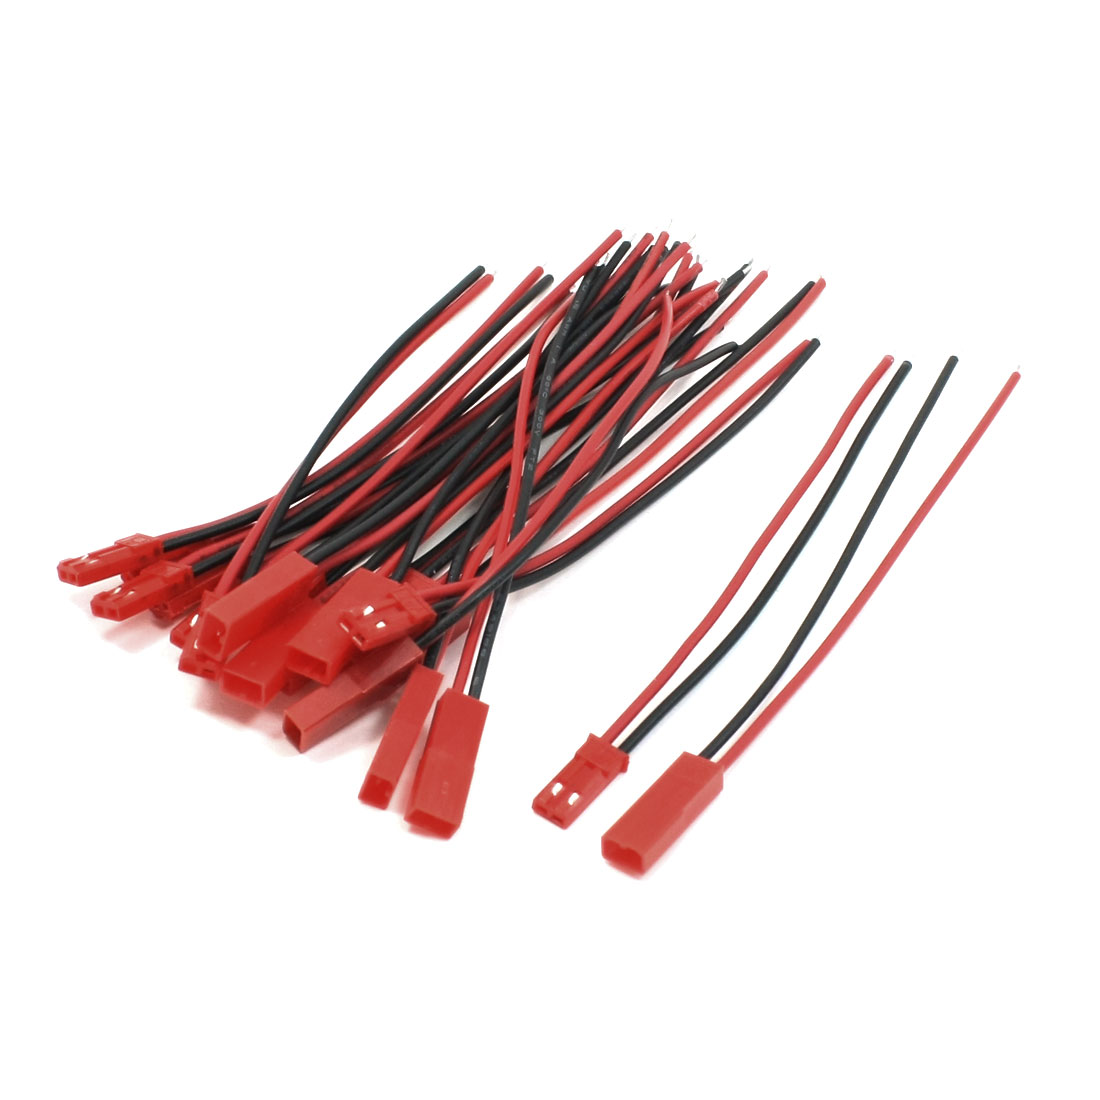 RC Planes Cars Li-Po Battery JST Male Female Connector Wire 22AWG 100mm 10 Pairs